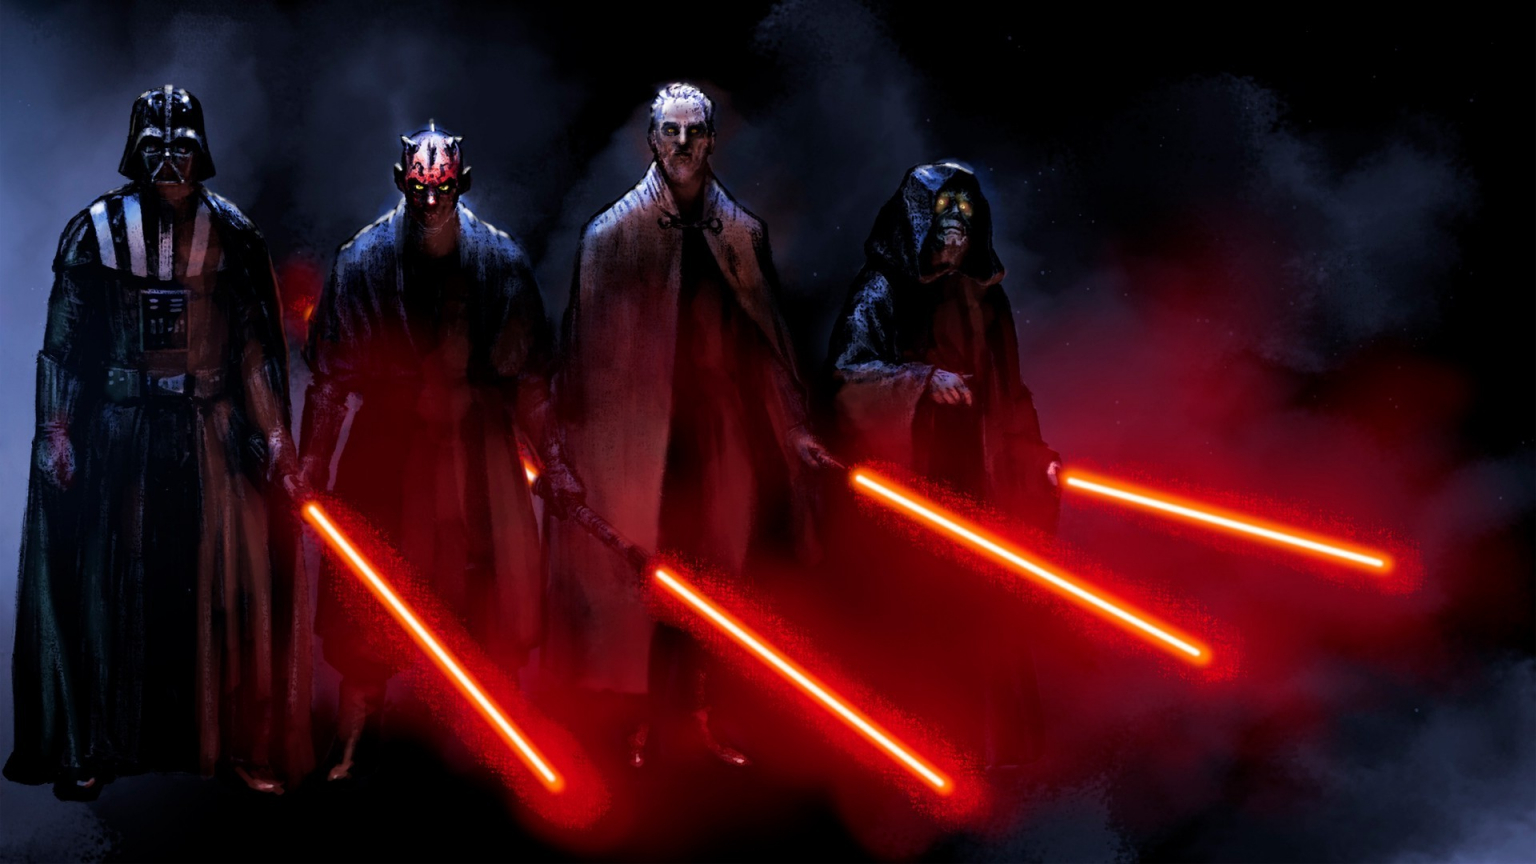 Free Download Star Wars Sith Wallpapers The Art Mad Wallpapers 1920x1080 For Your Desktop Mobile Tablet Explore 76 Star Wars Backgrounds Free Star Wars Wallpaper Star Wars Wallpaper Stars Wallpaper Hd